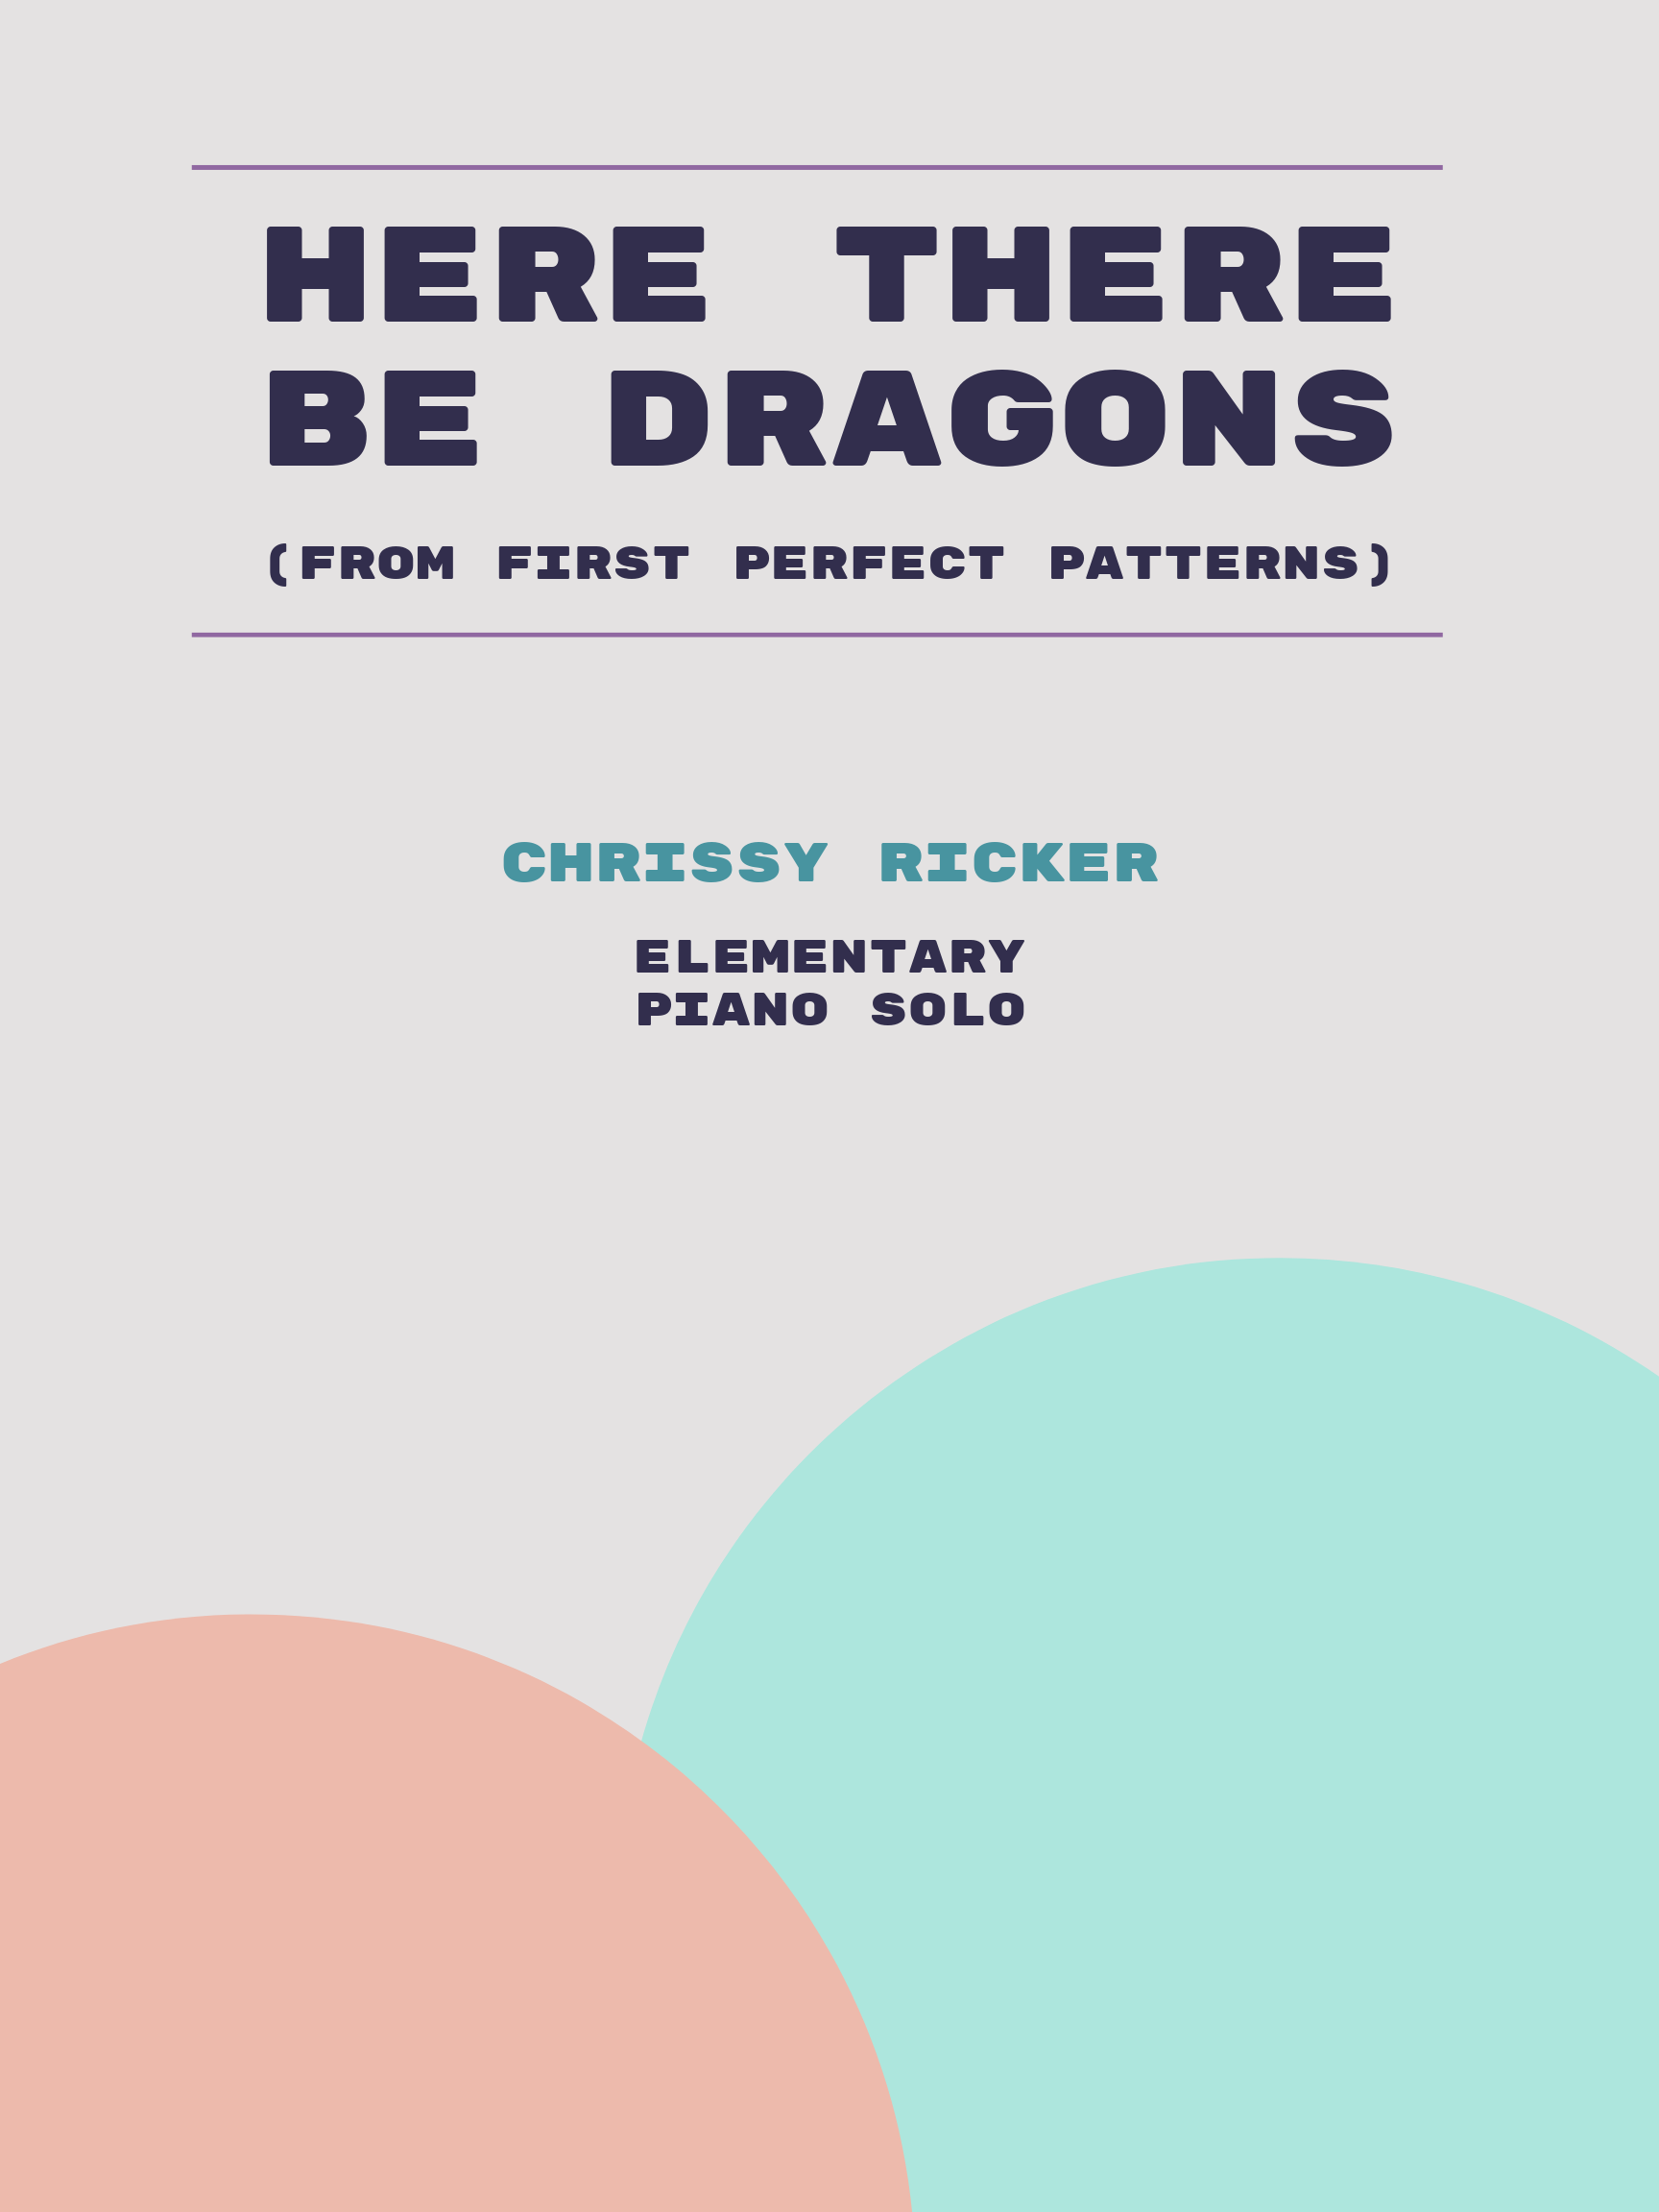 Here There Be Dragons by Chrissy Ricker